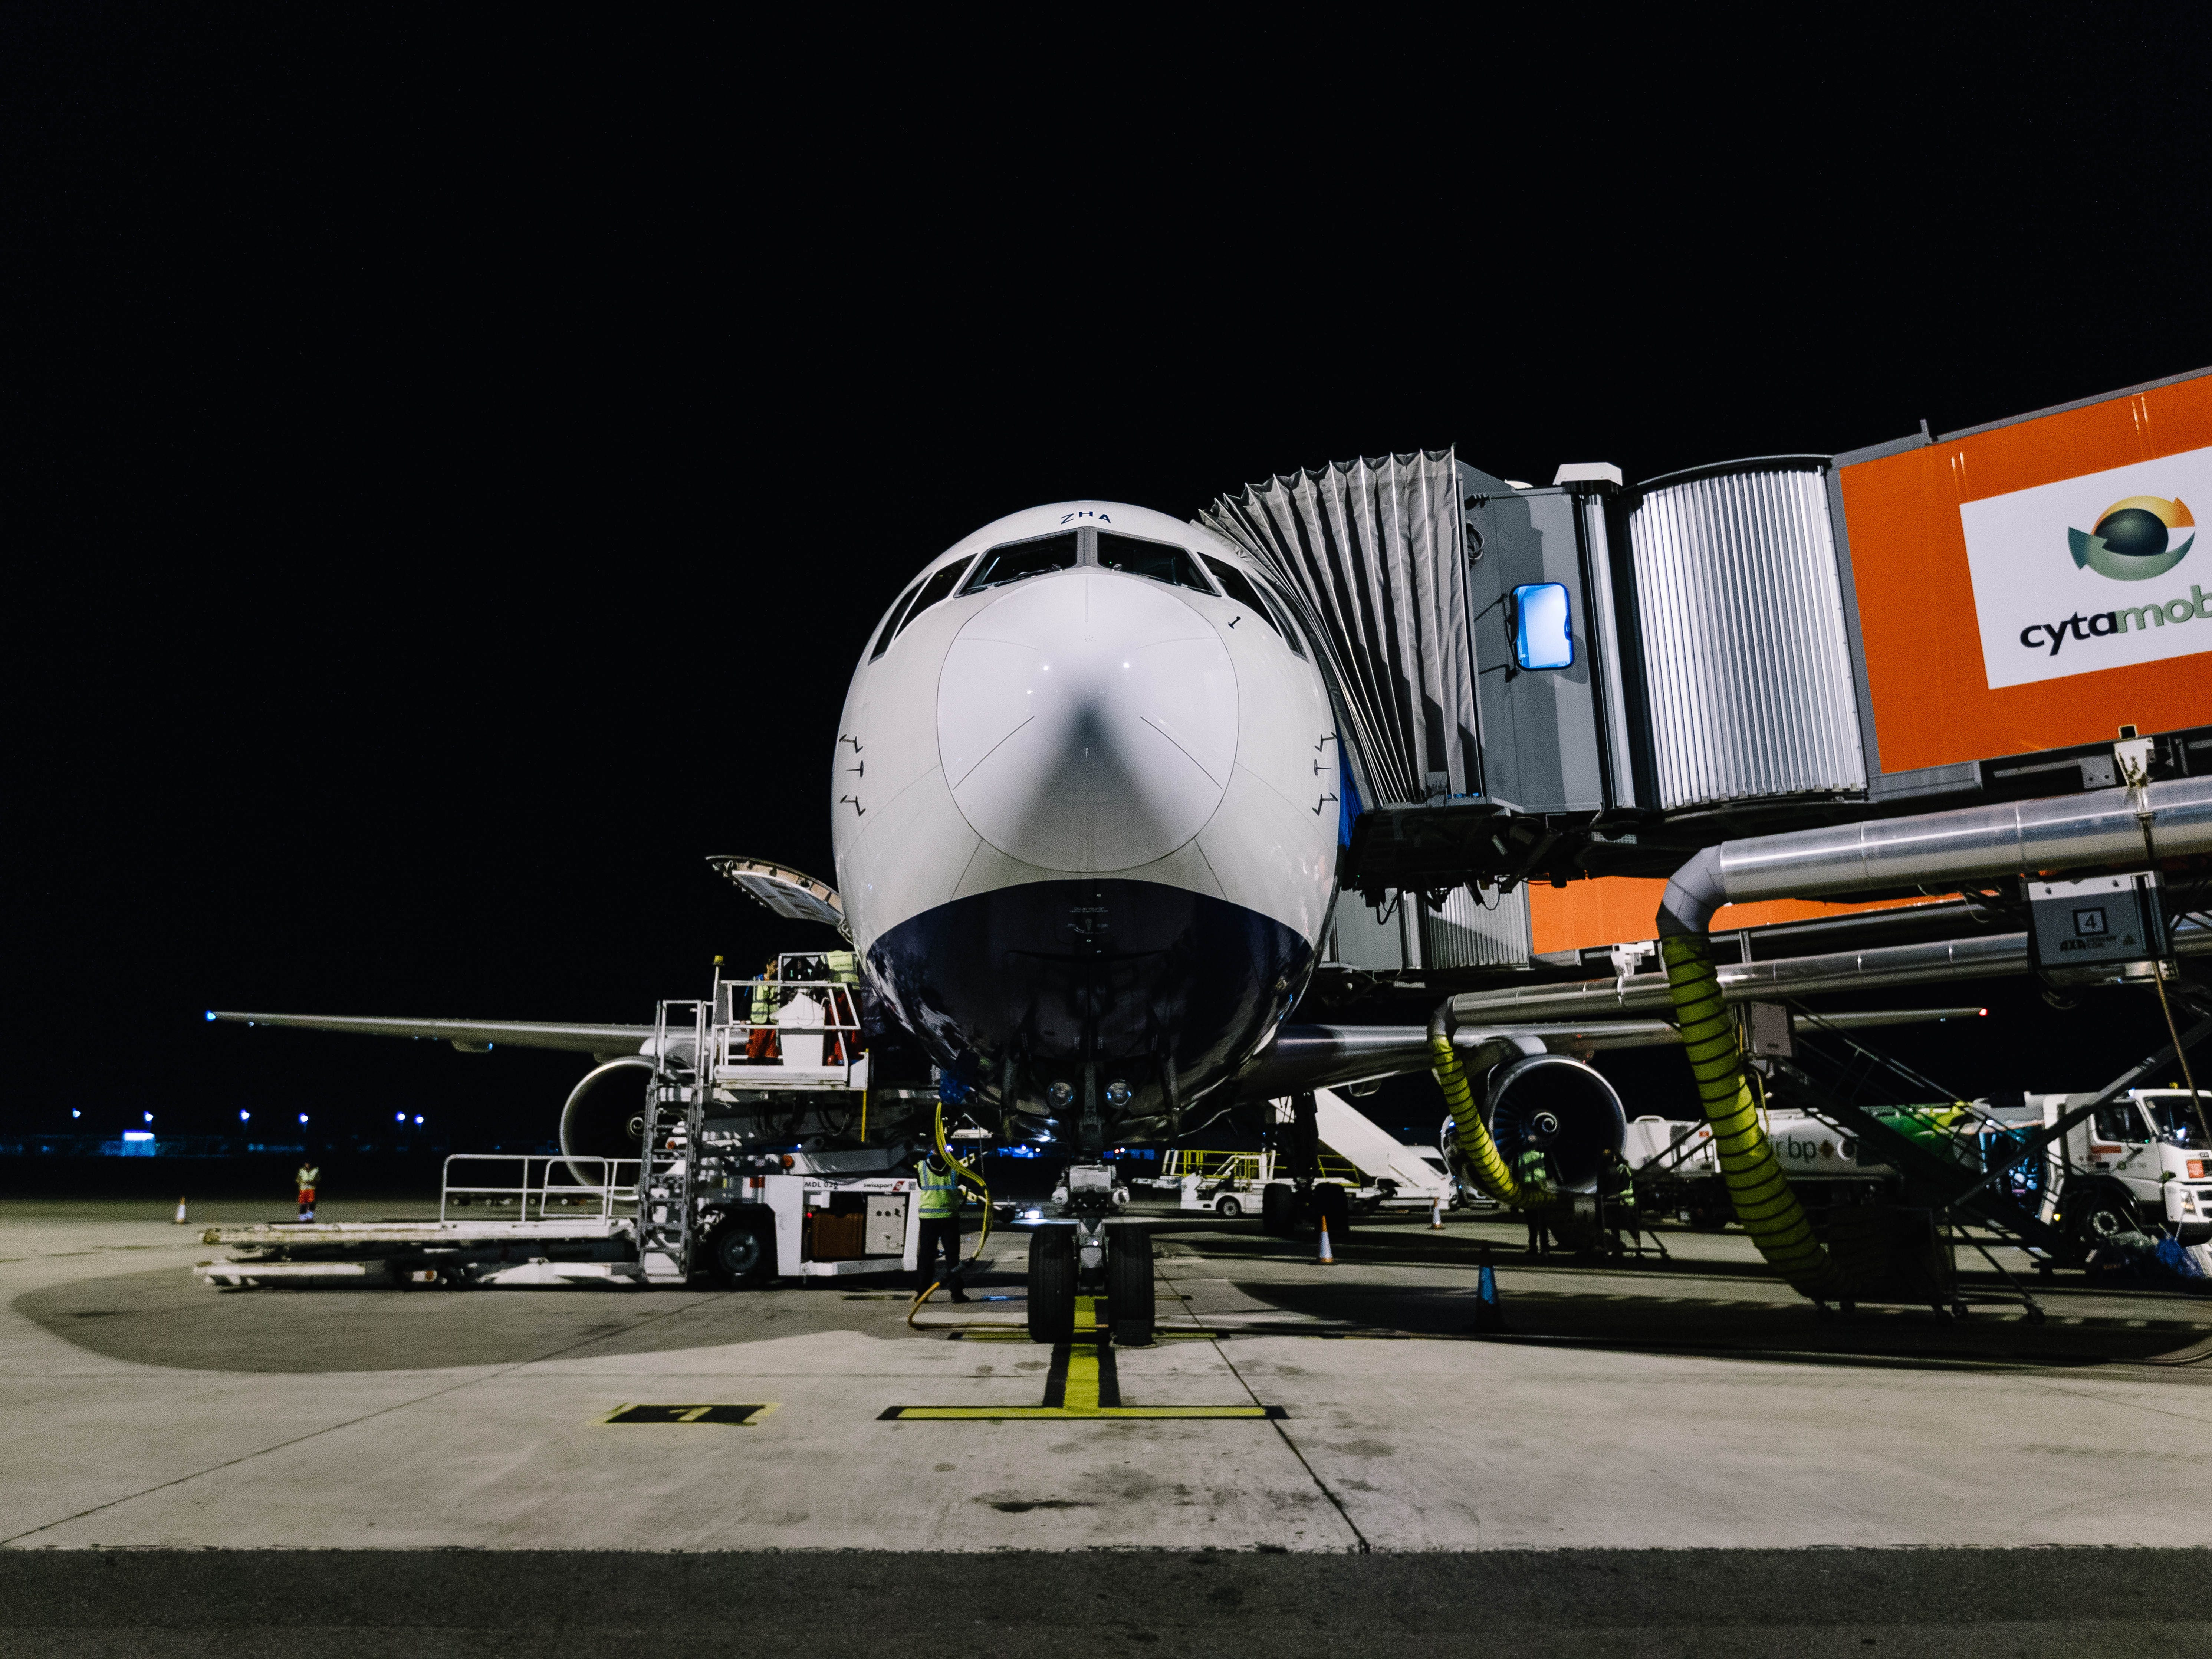 The final Boeing 767 in the British Airways' fleet was retired on Nov. 25, 2018, after a round trip from London Heathrow to Cyprus and back.